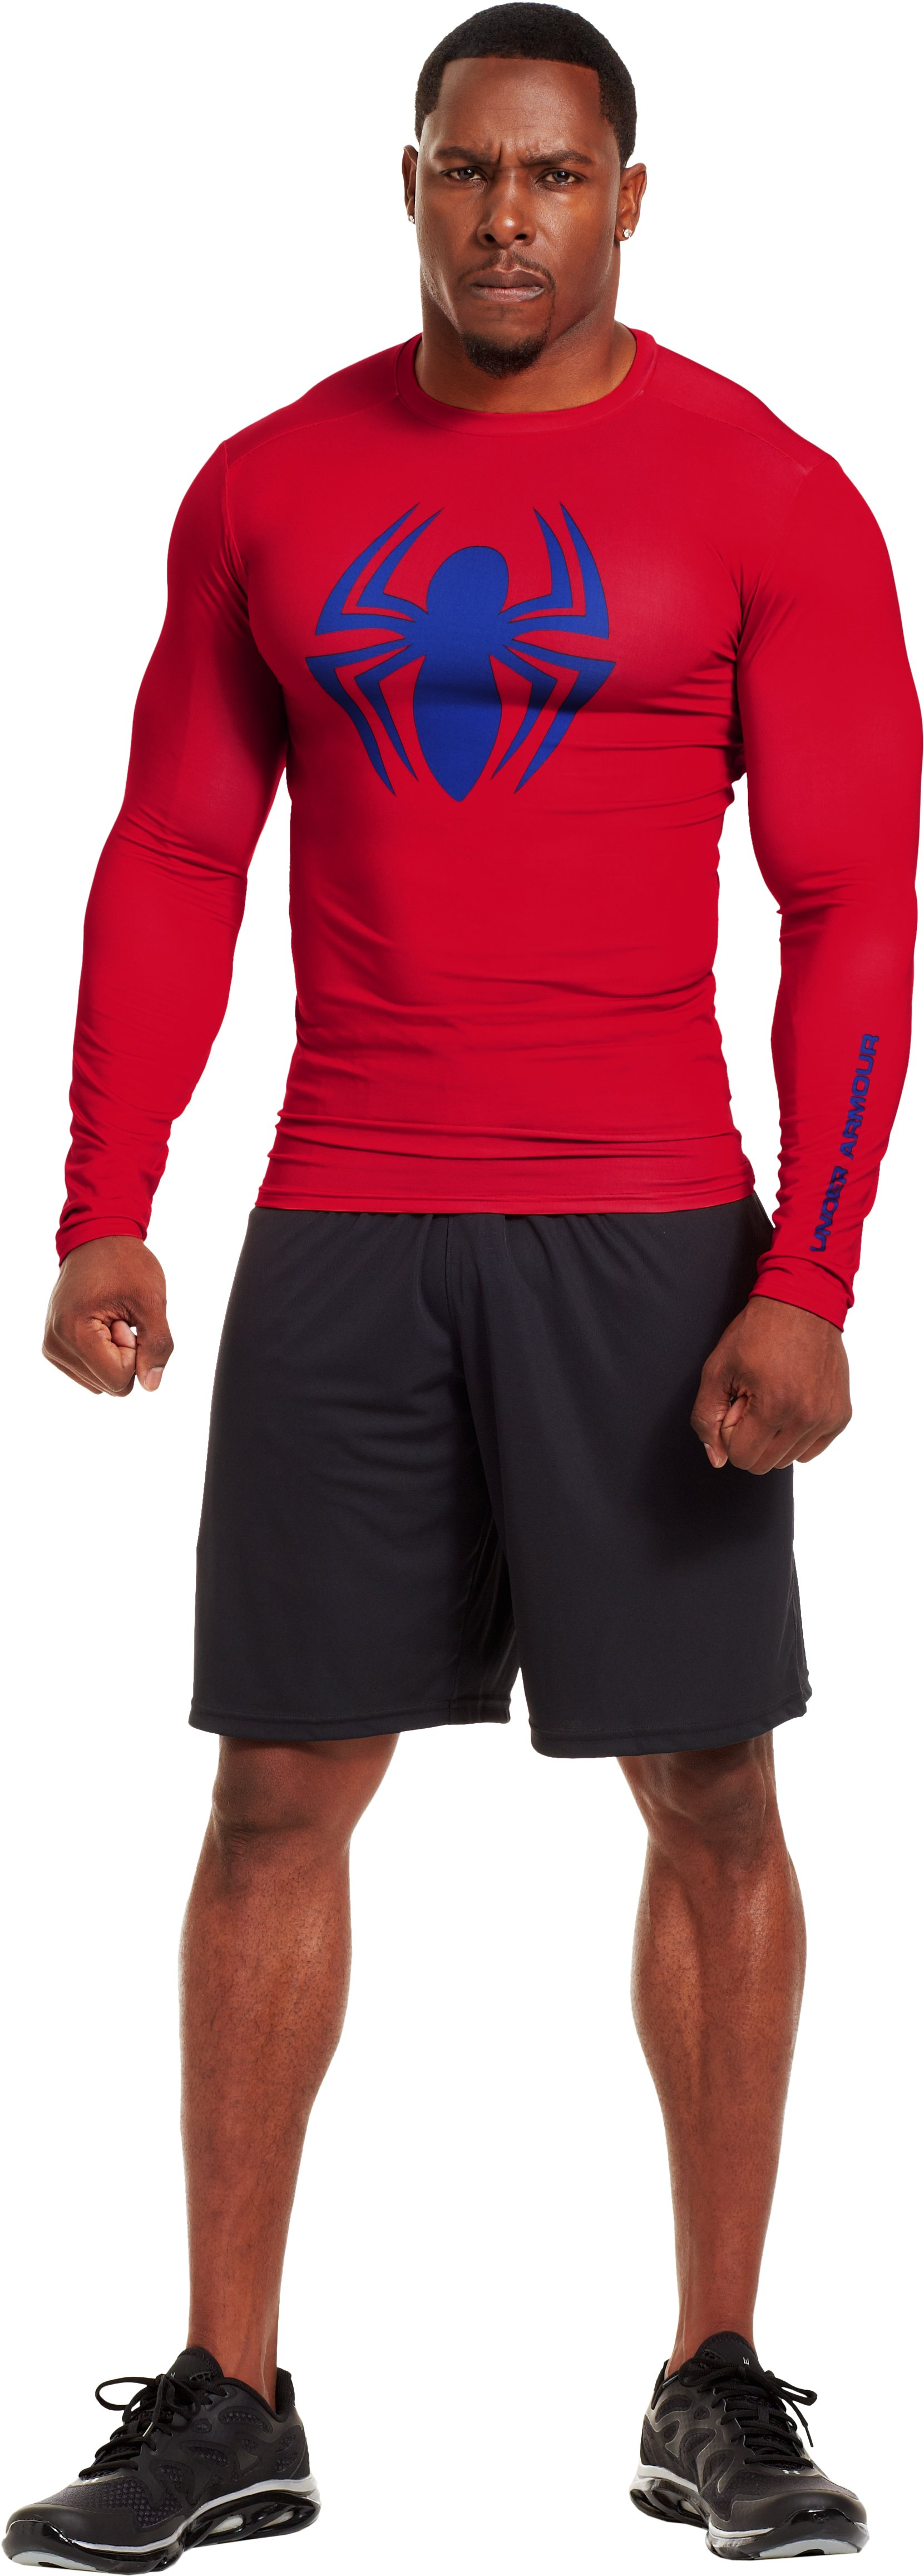 Men's Under Armour® Alter Ego Compression Long Sleeve Shirt, Red, Front